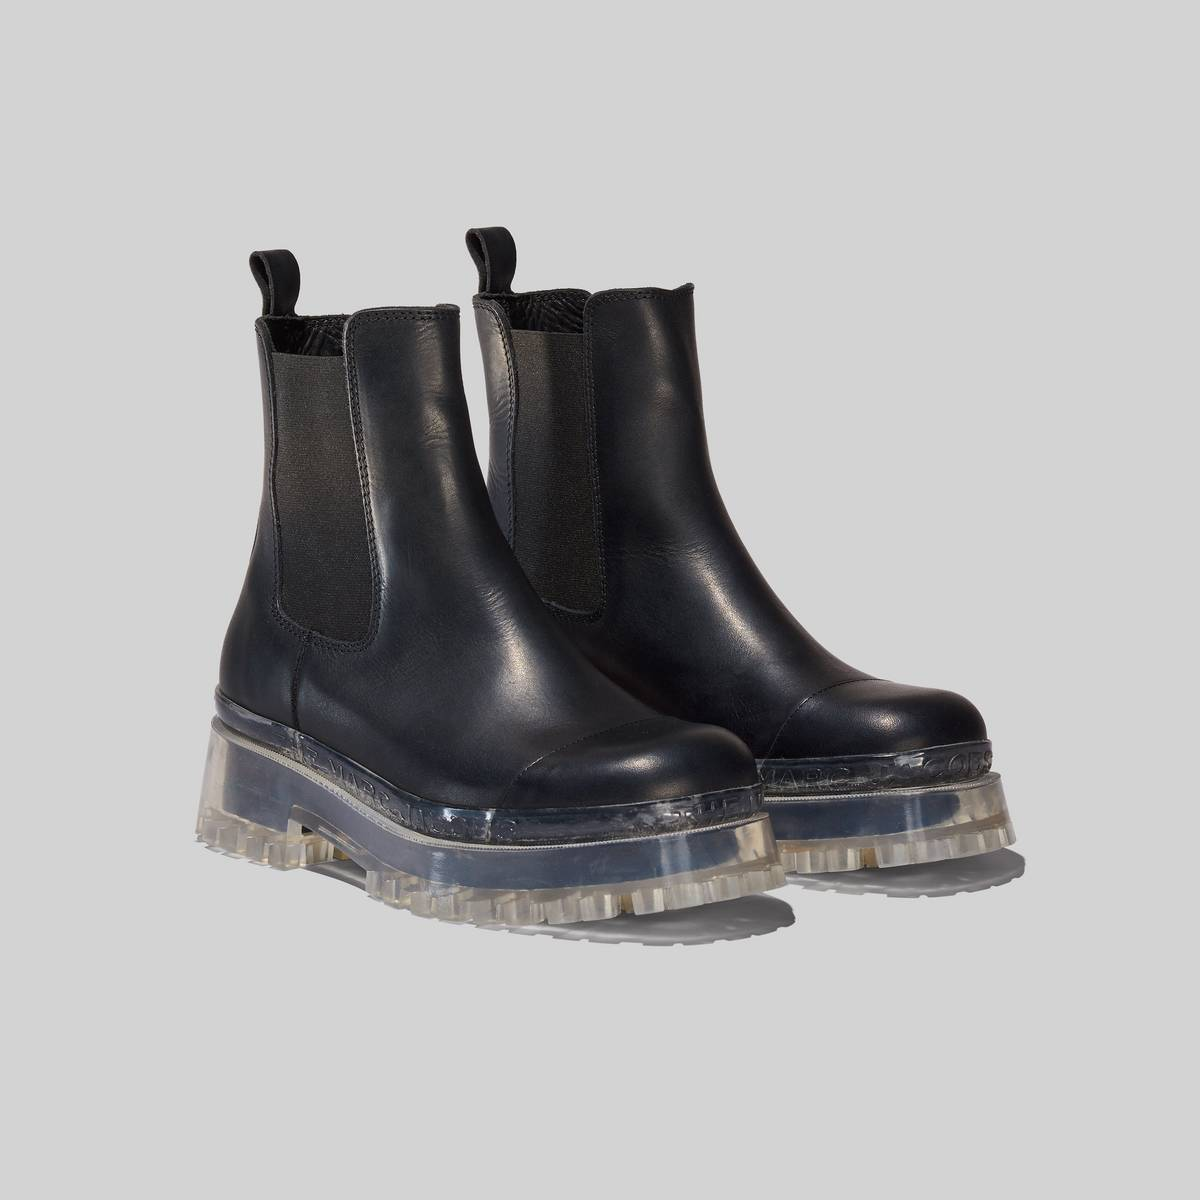 The ultimate chelsea combat boot reimagined with a new transparent rubber sole featuring our signature logo. | MARC JACOBS Women\\'s The Boots in Black, Size 41